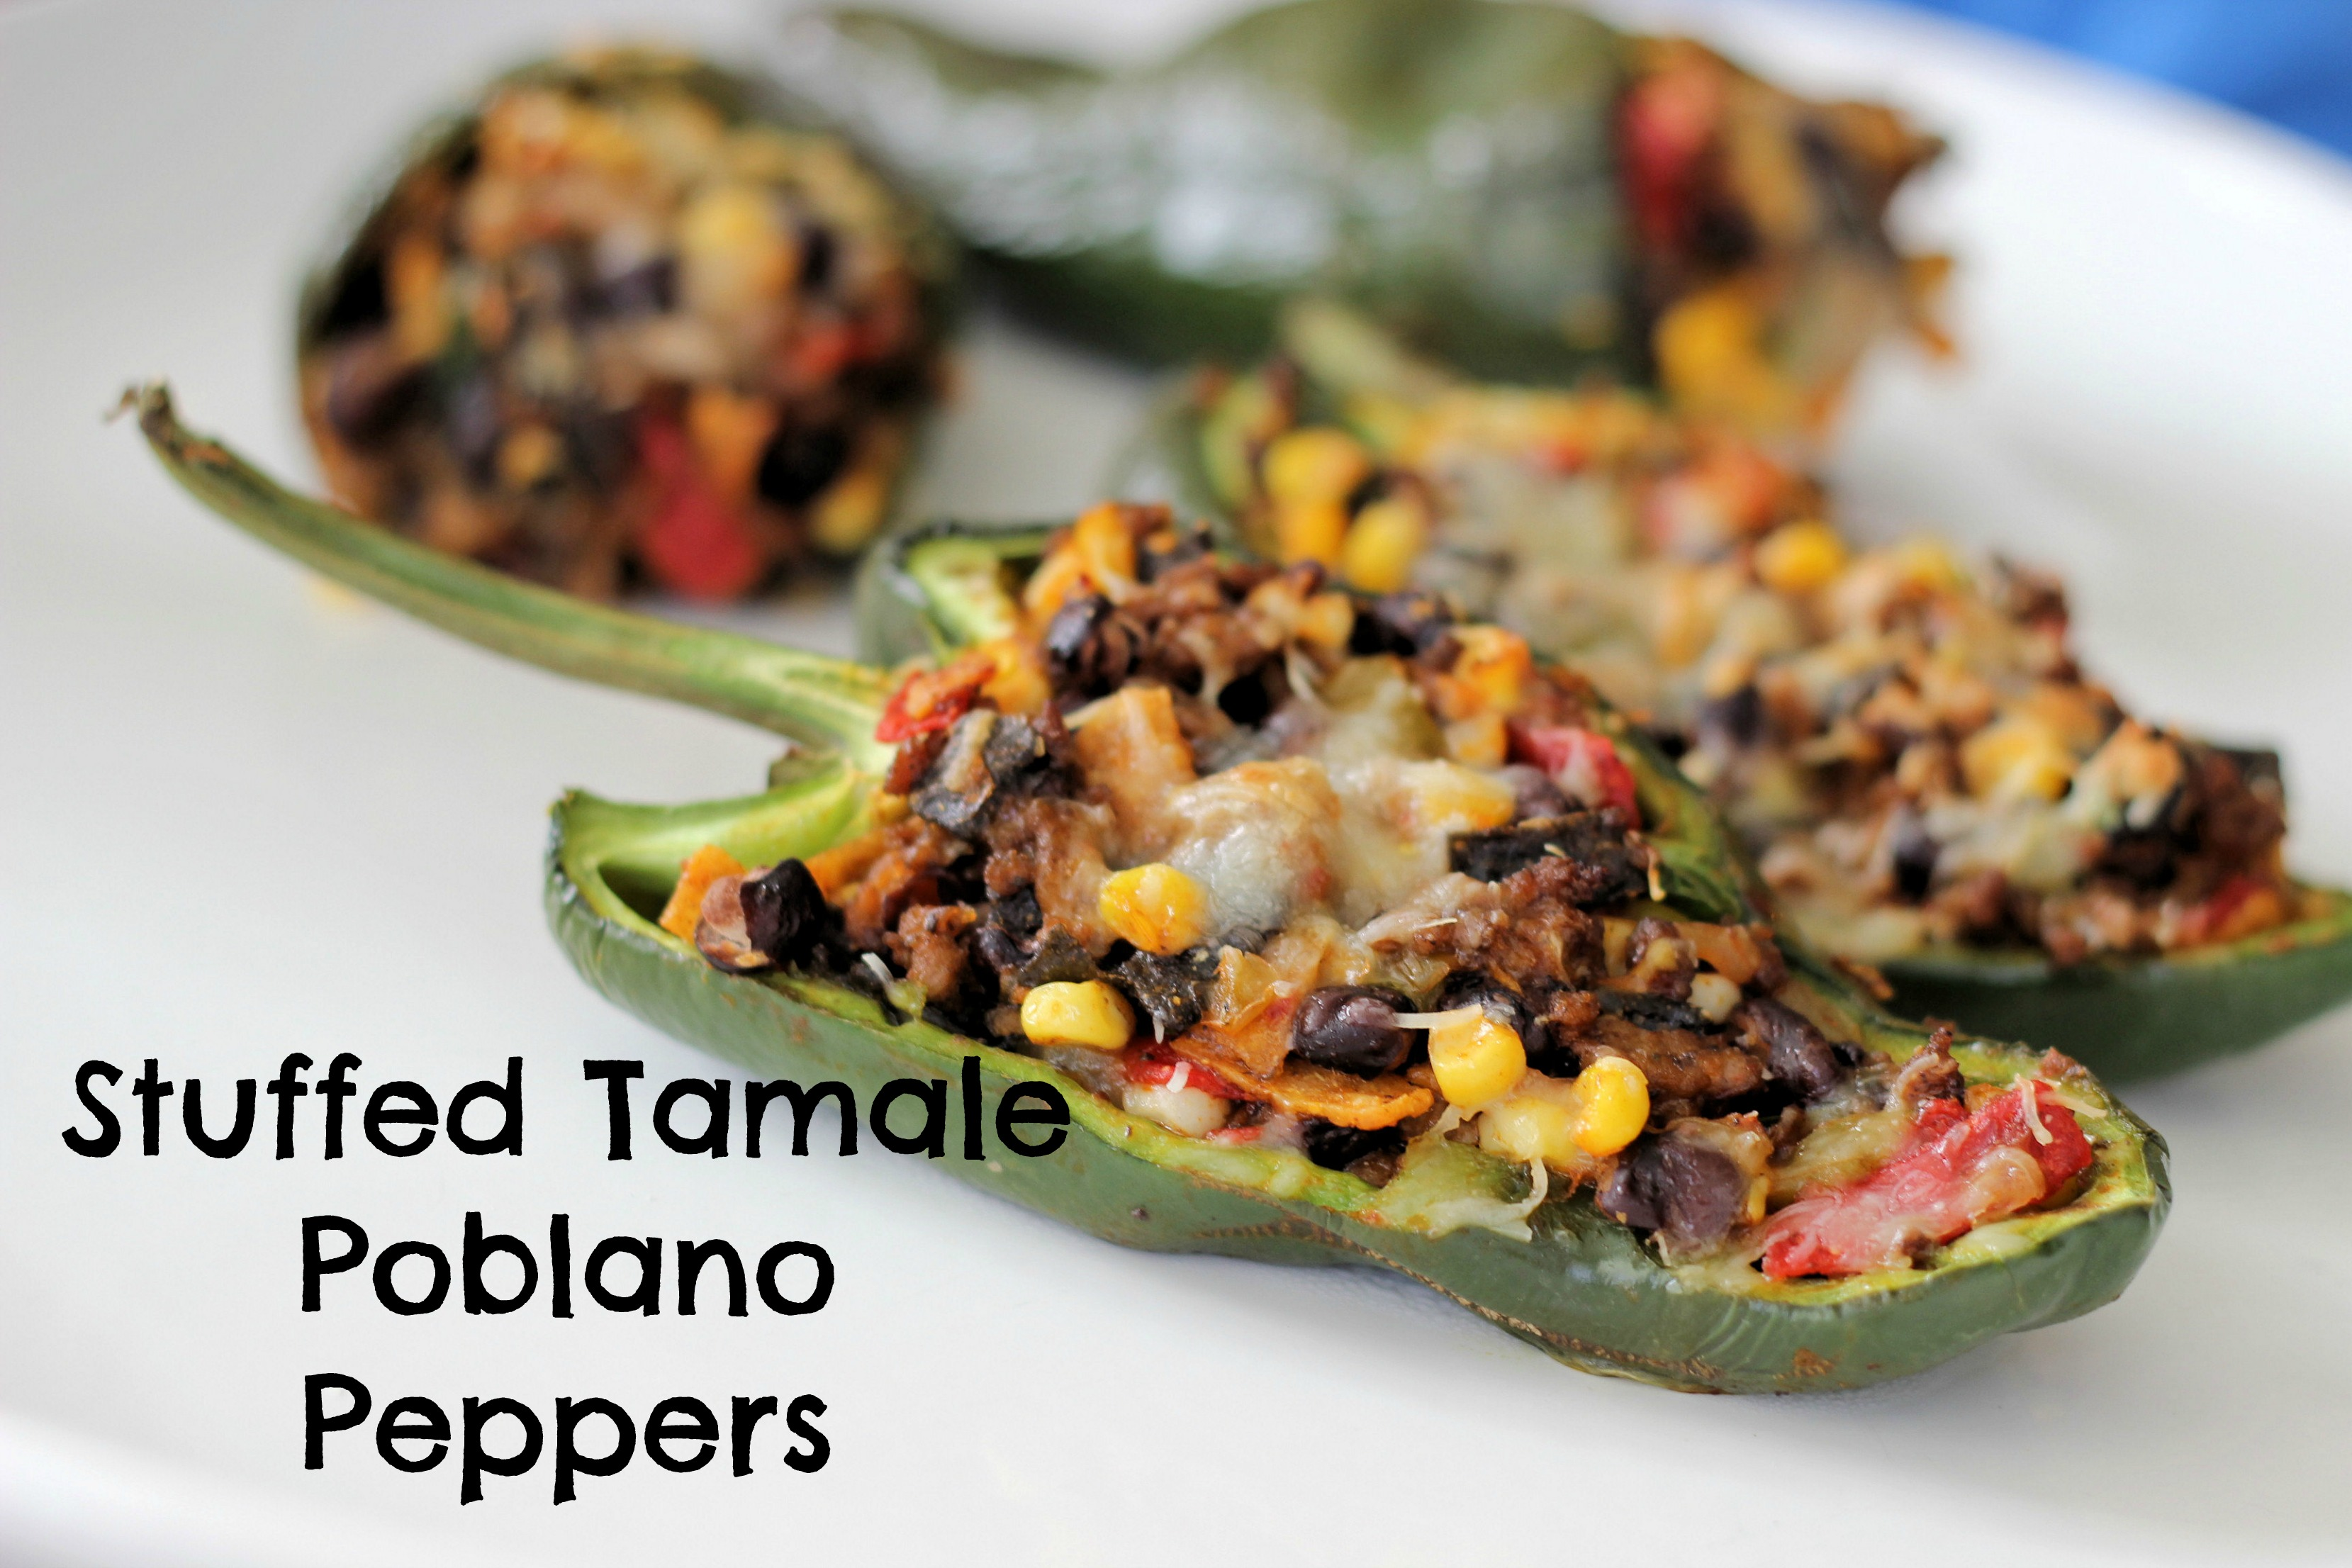 stuffed-tamale-roasted-poblano-peppers